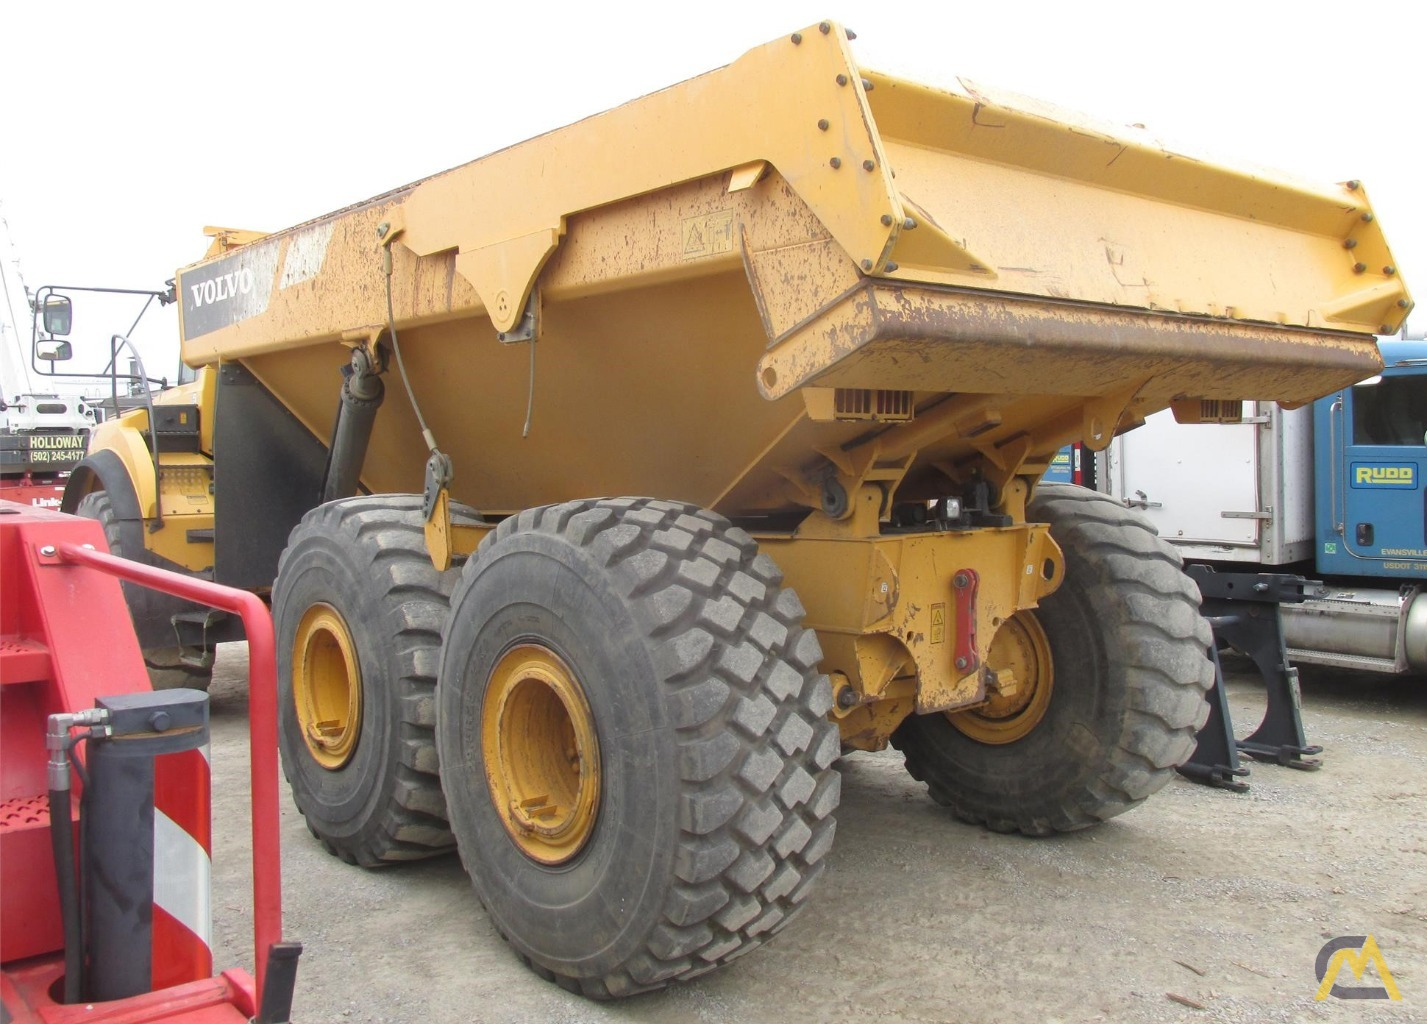 Volvo A40F Articulating Off Highway Dump Truck 3